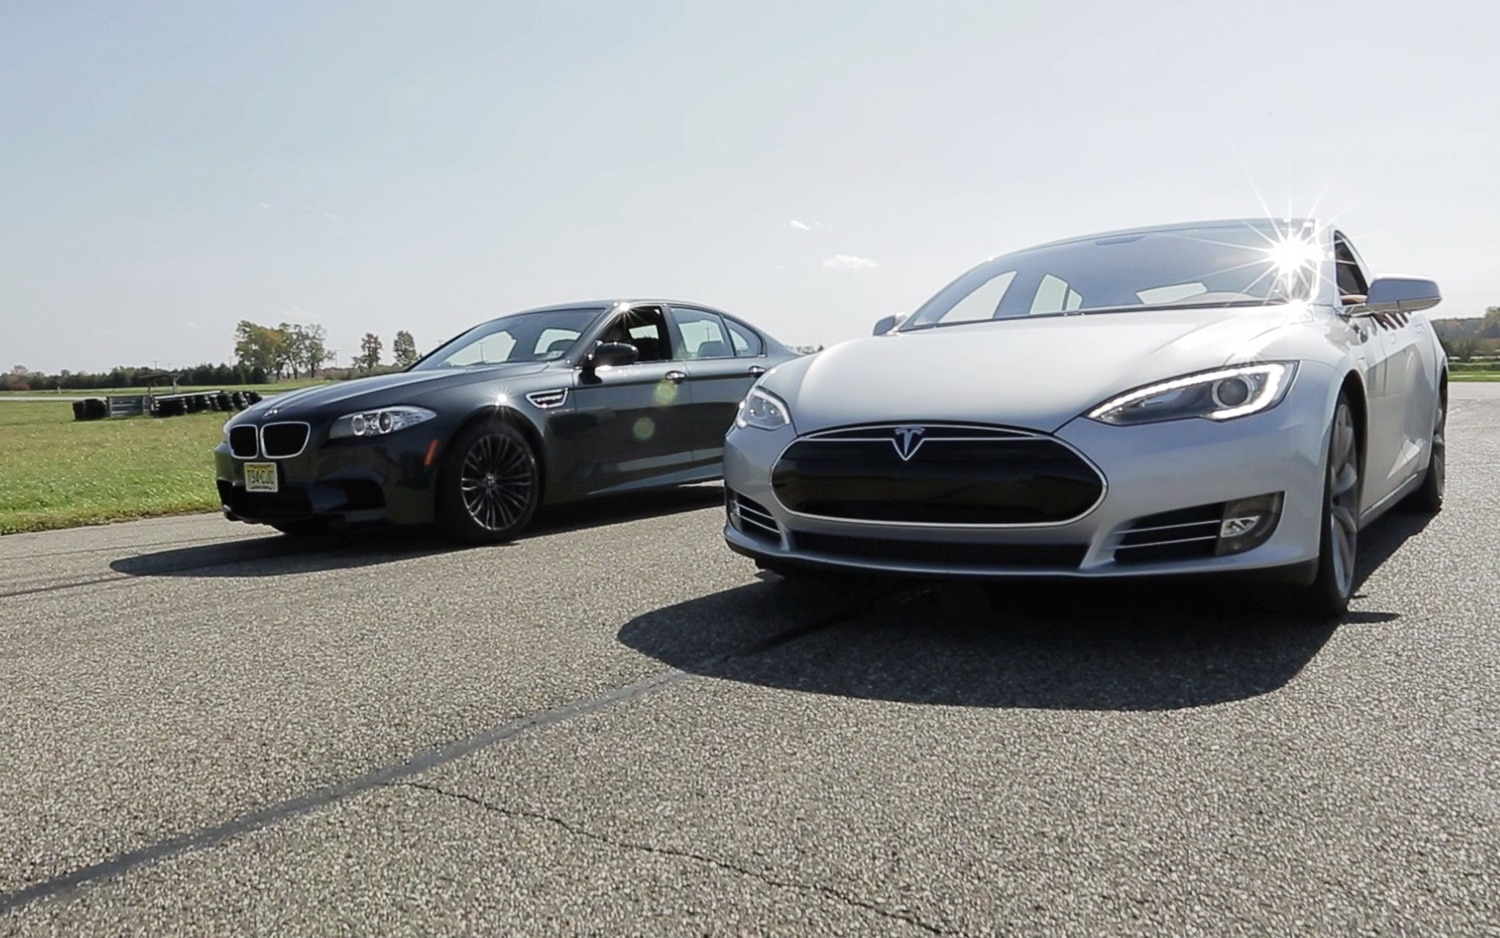 Tesla Model S Vs BMW M5 At Line1